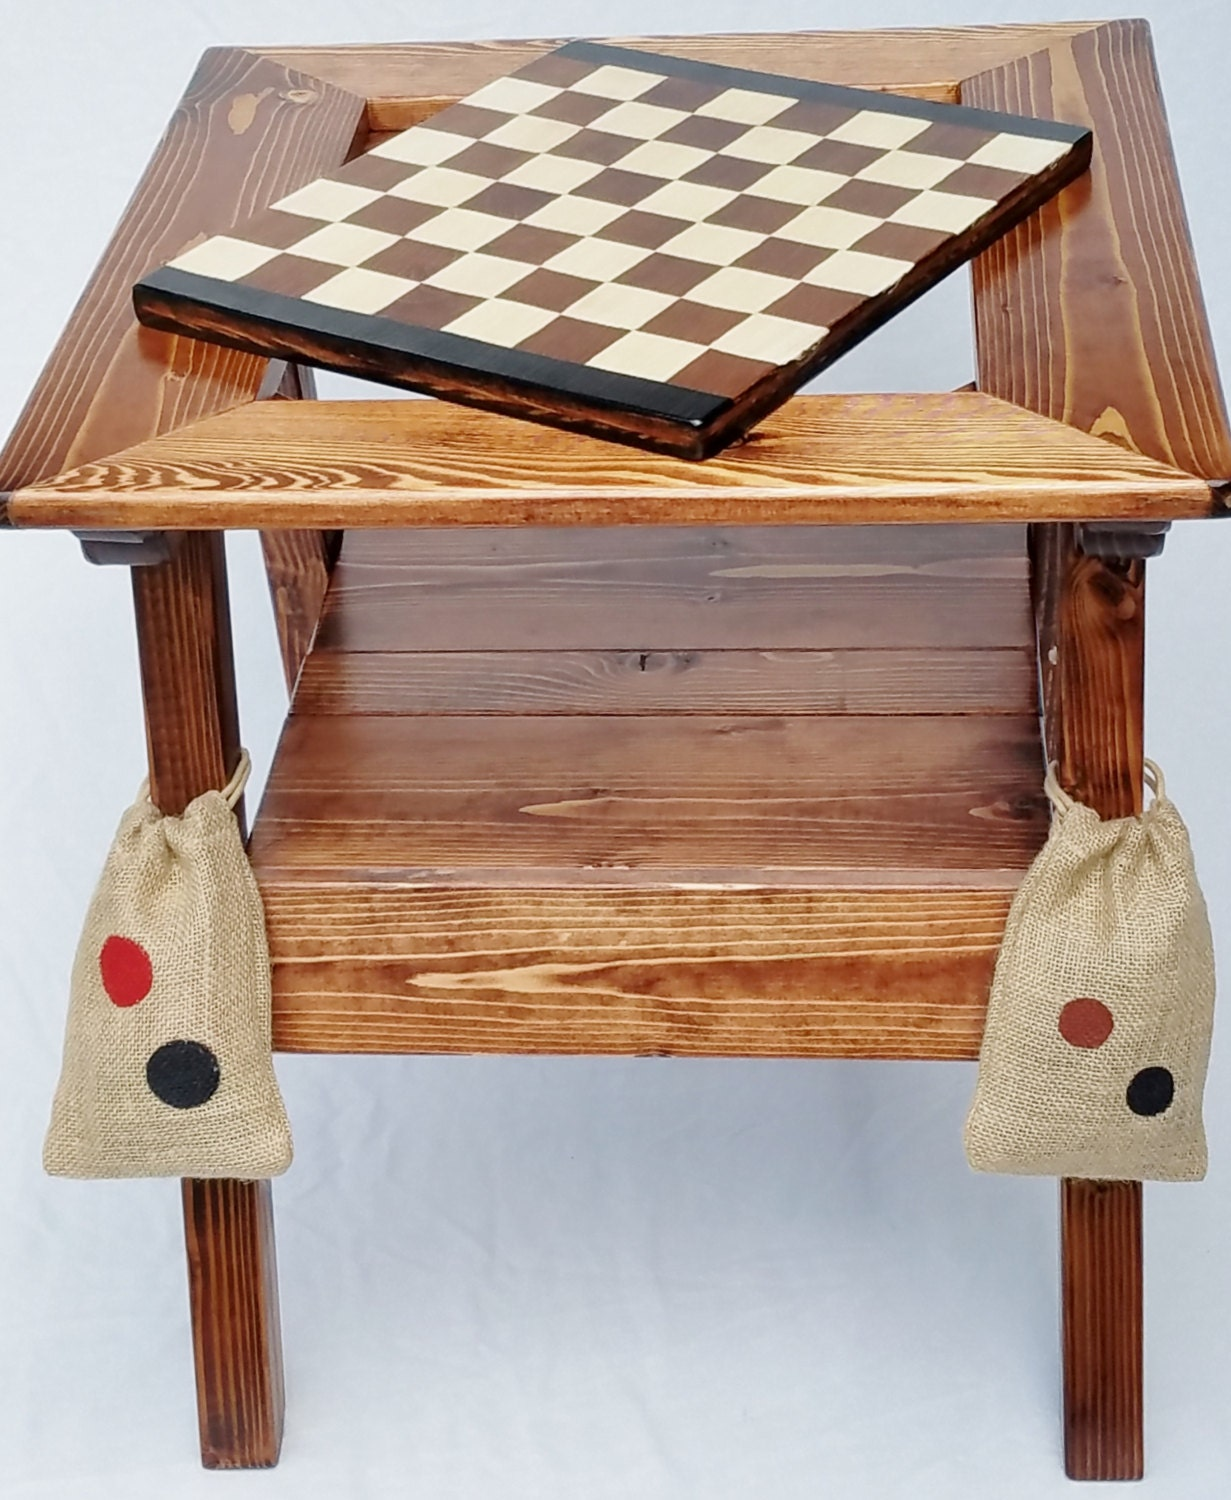 Chess Backgammon Checkers Table Outdoor Game Table Wood